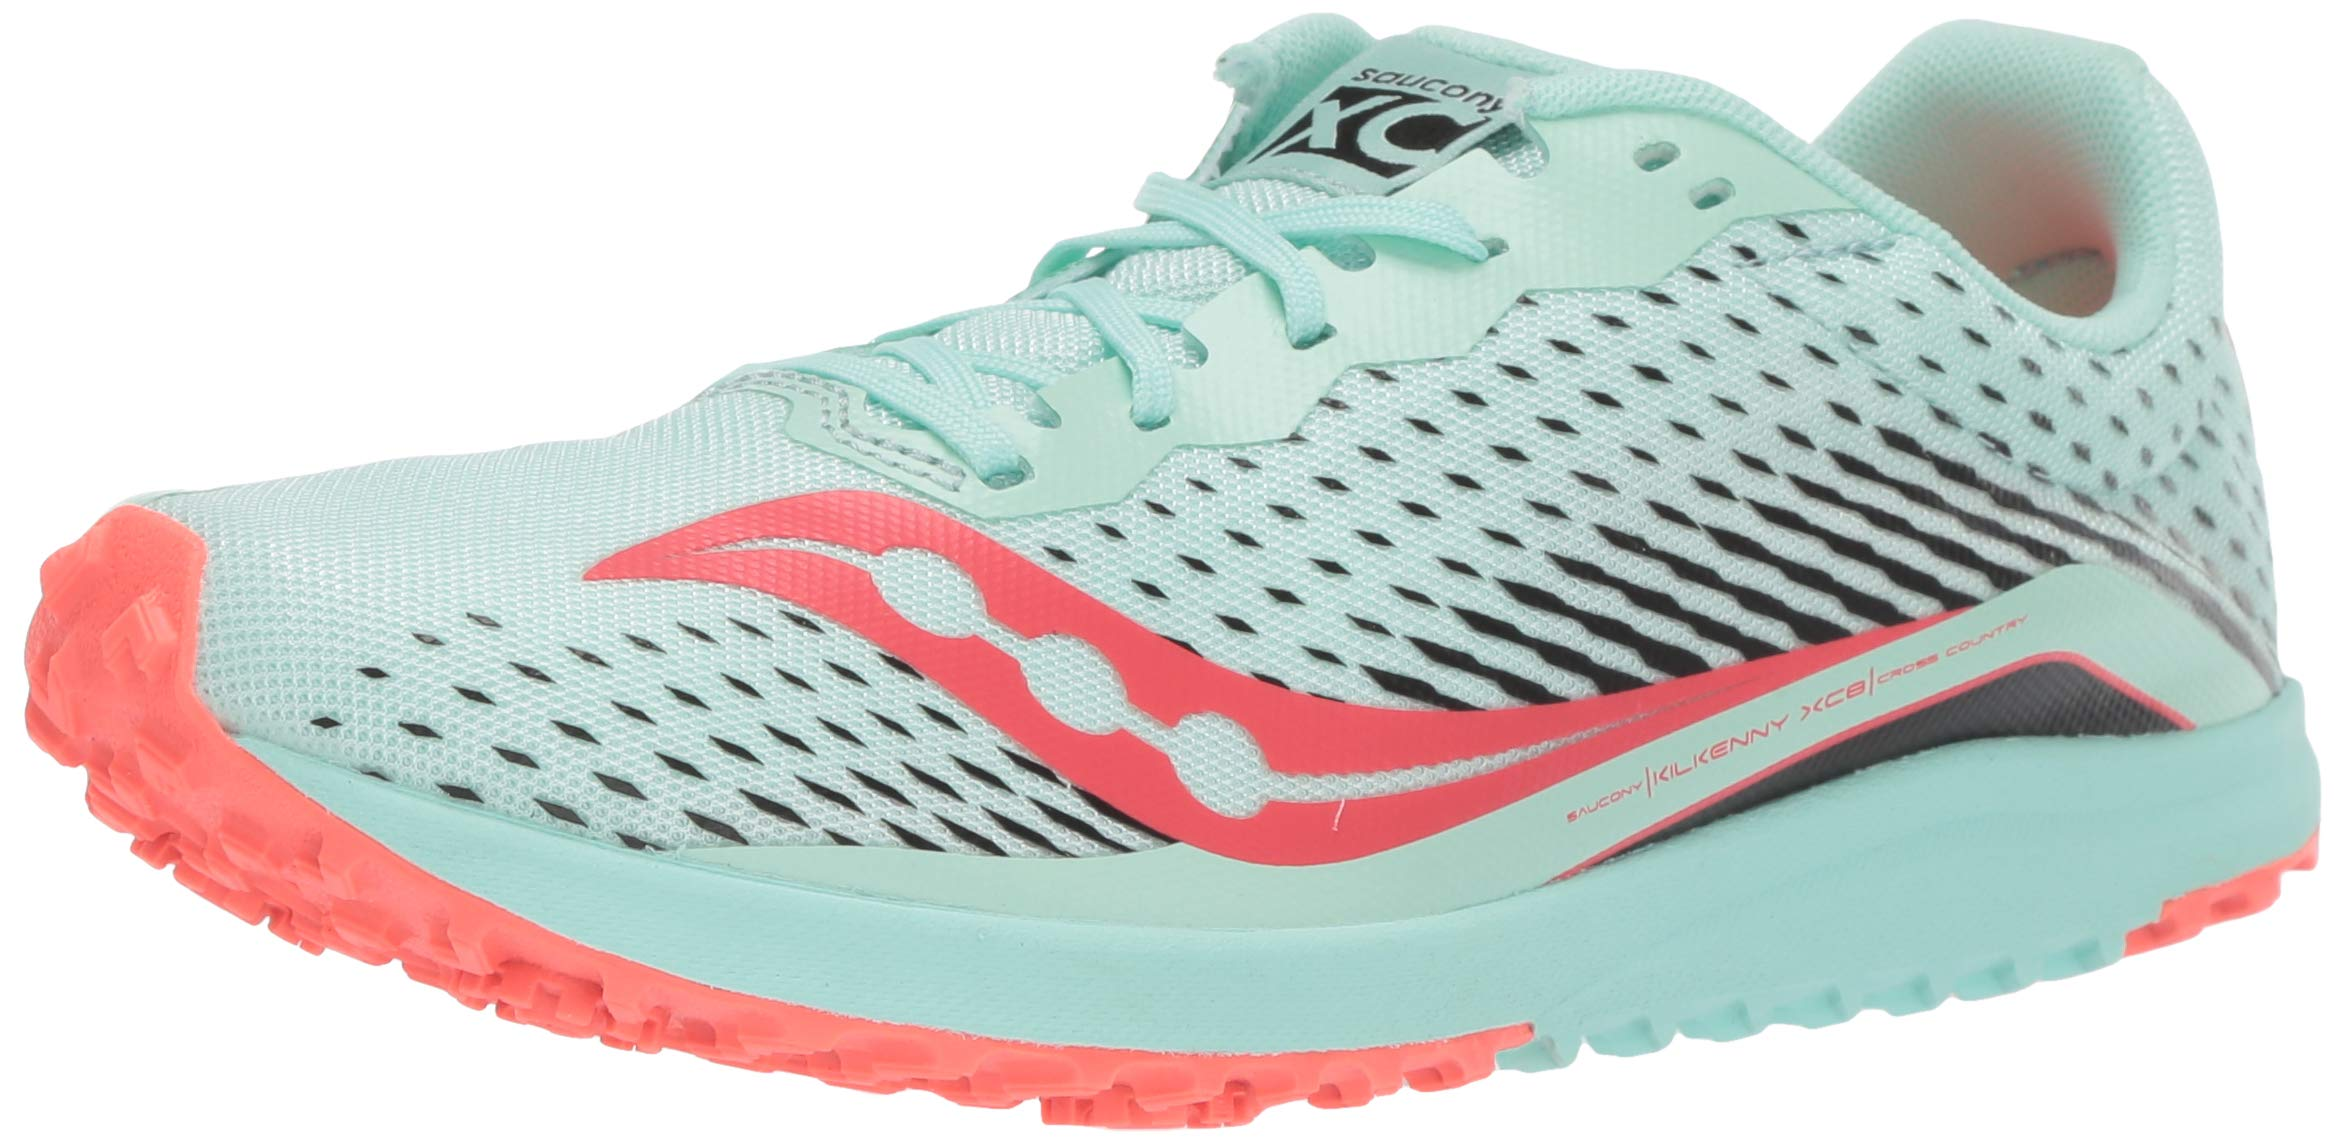 Saucony Women's Kilkenny XC8 Flat Track Shoe, Mint/Vizi Coral, 8 Medium US by Saucony